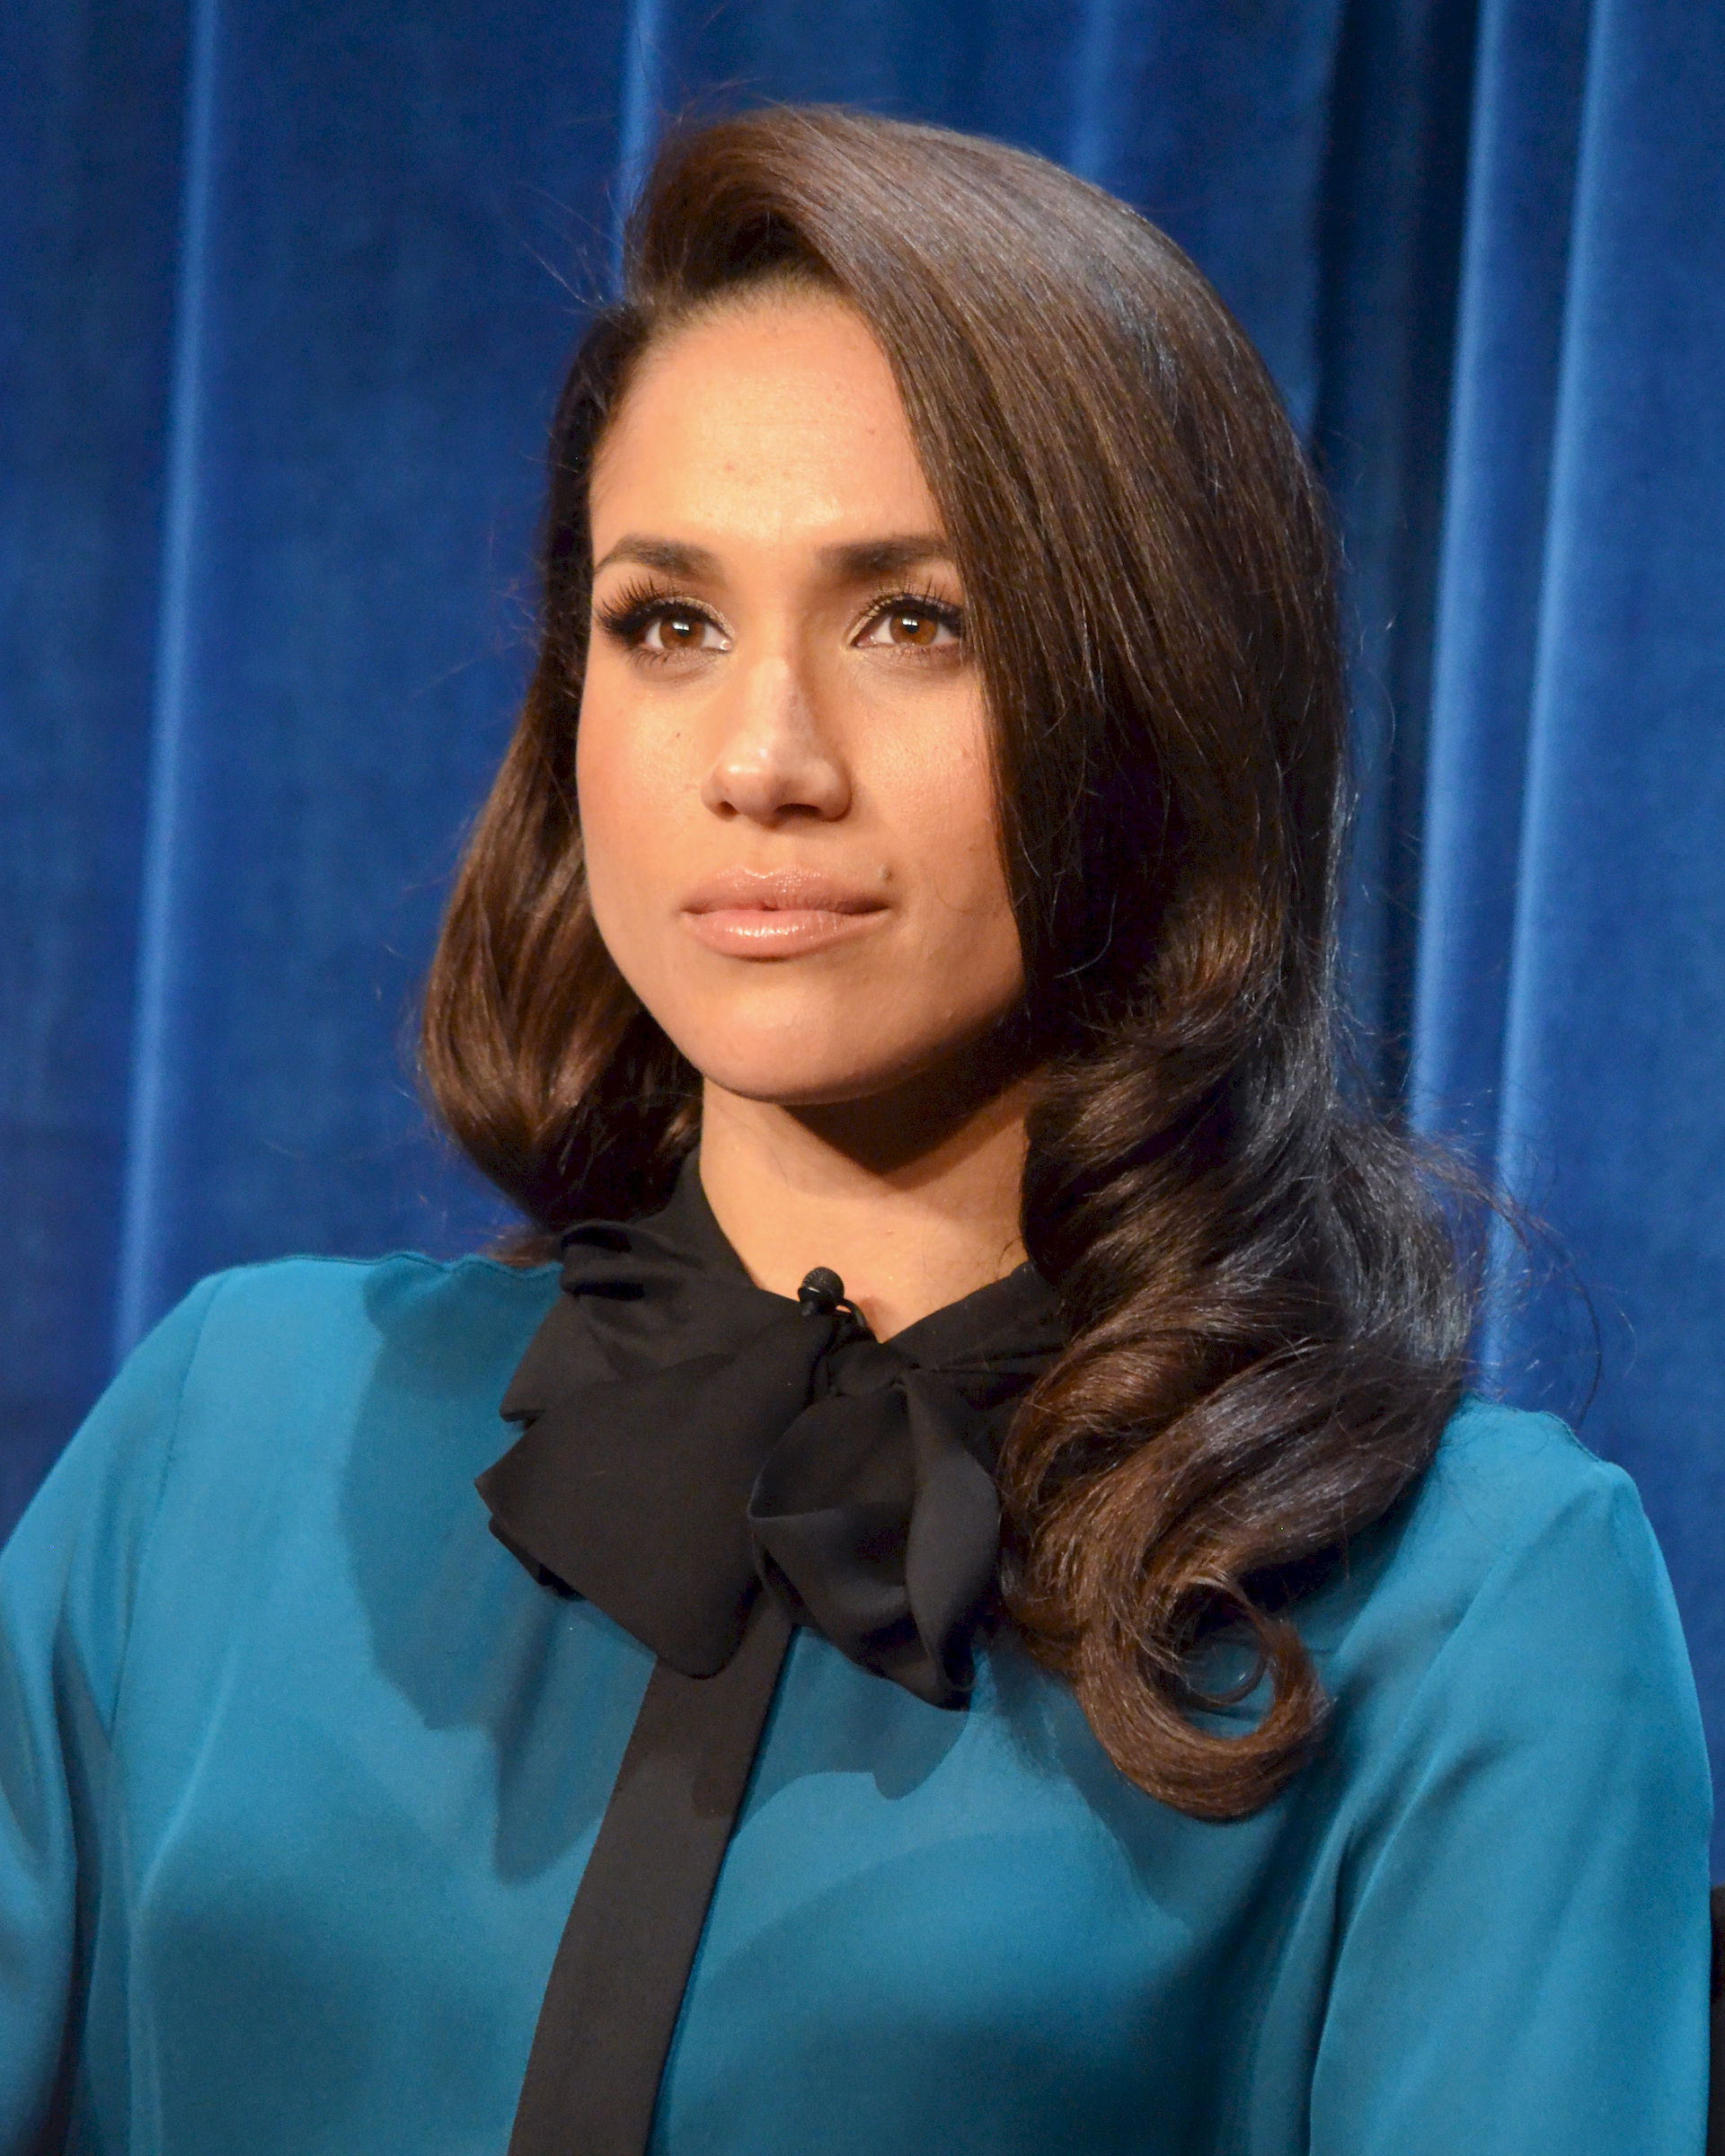 Photo of Meghan Markle: American fashion model, spokesmodel, and actress